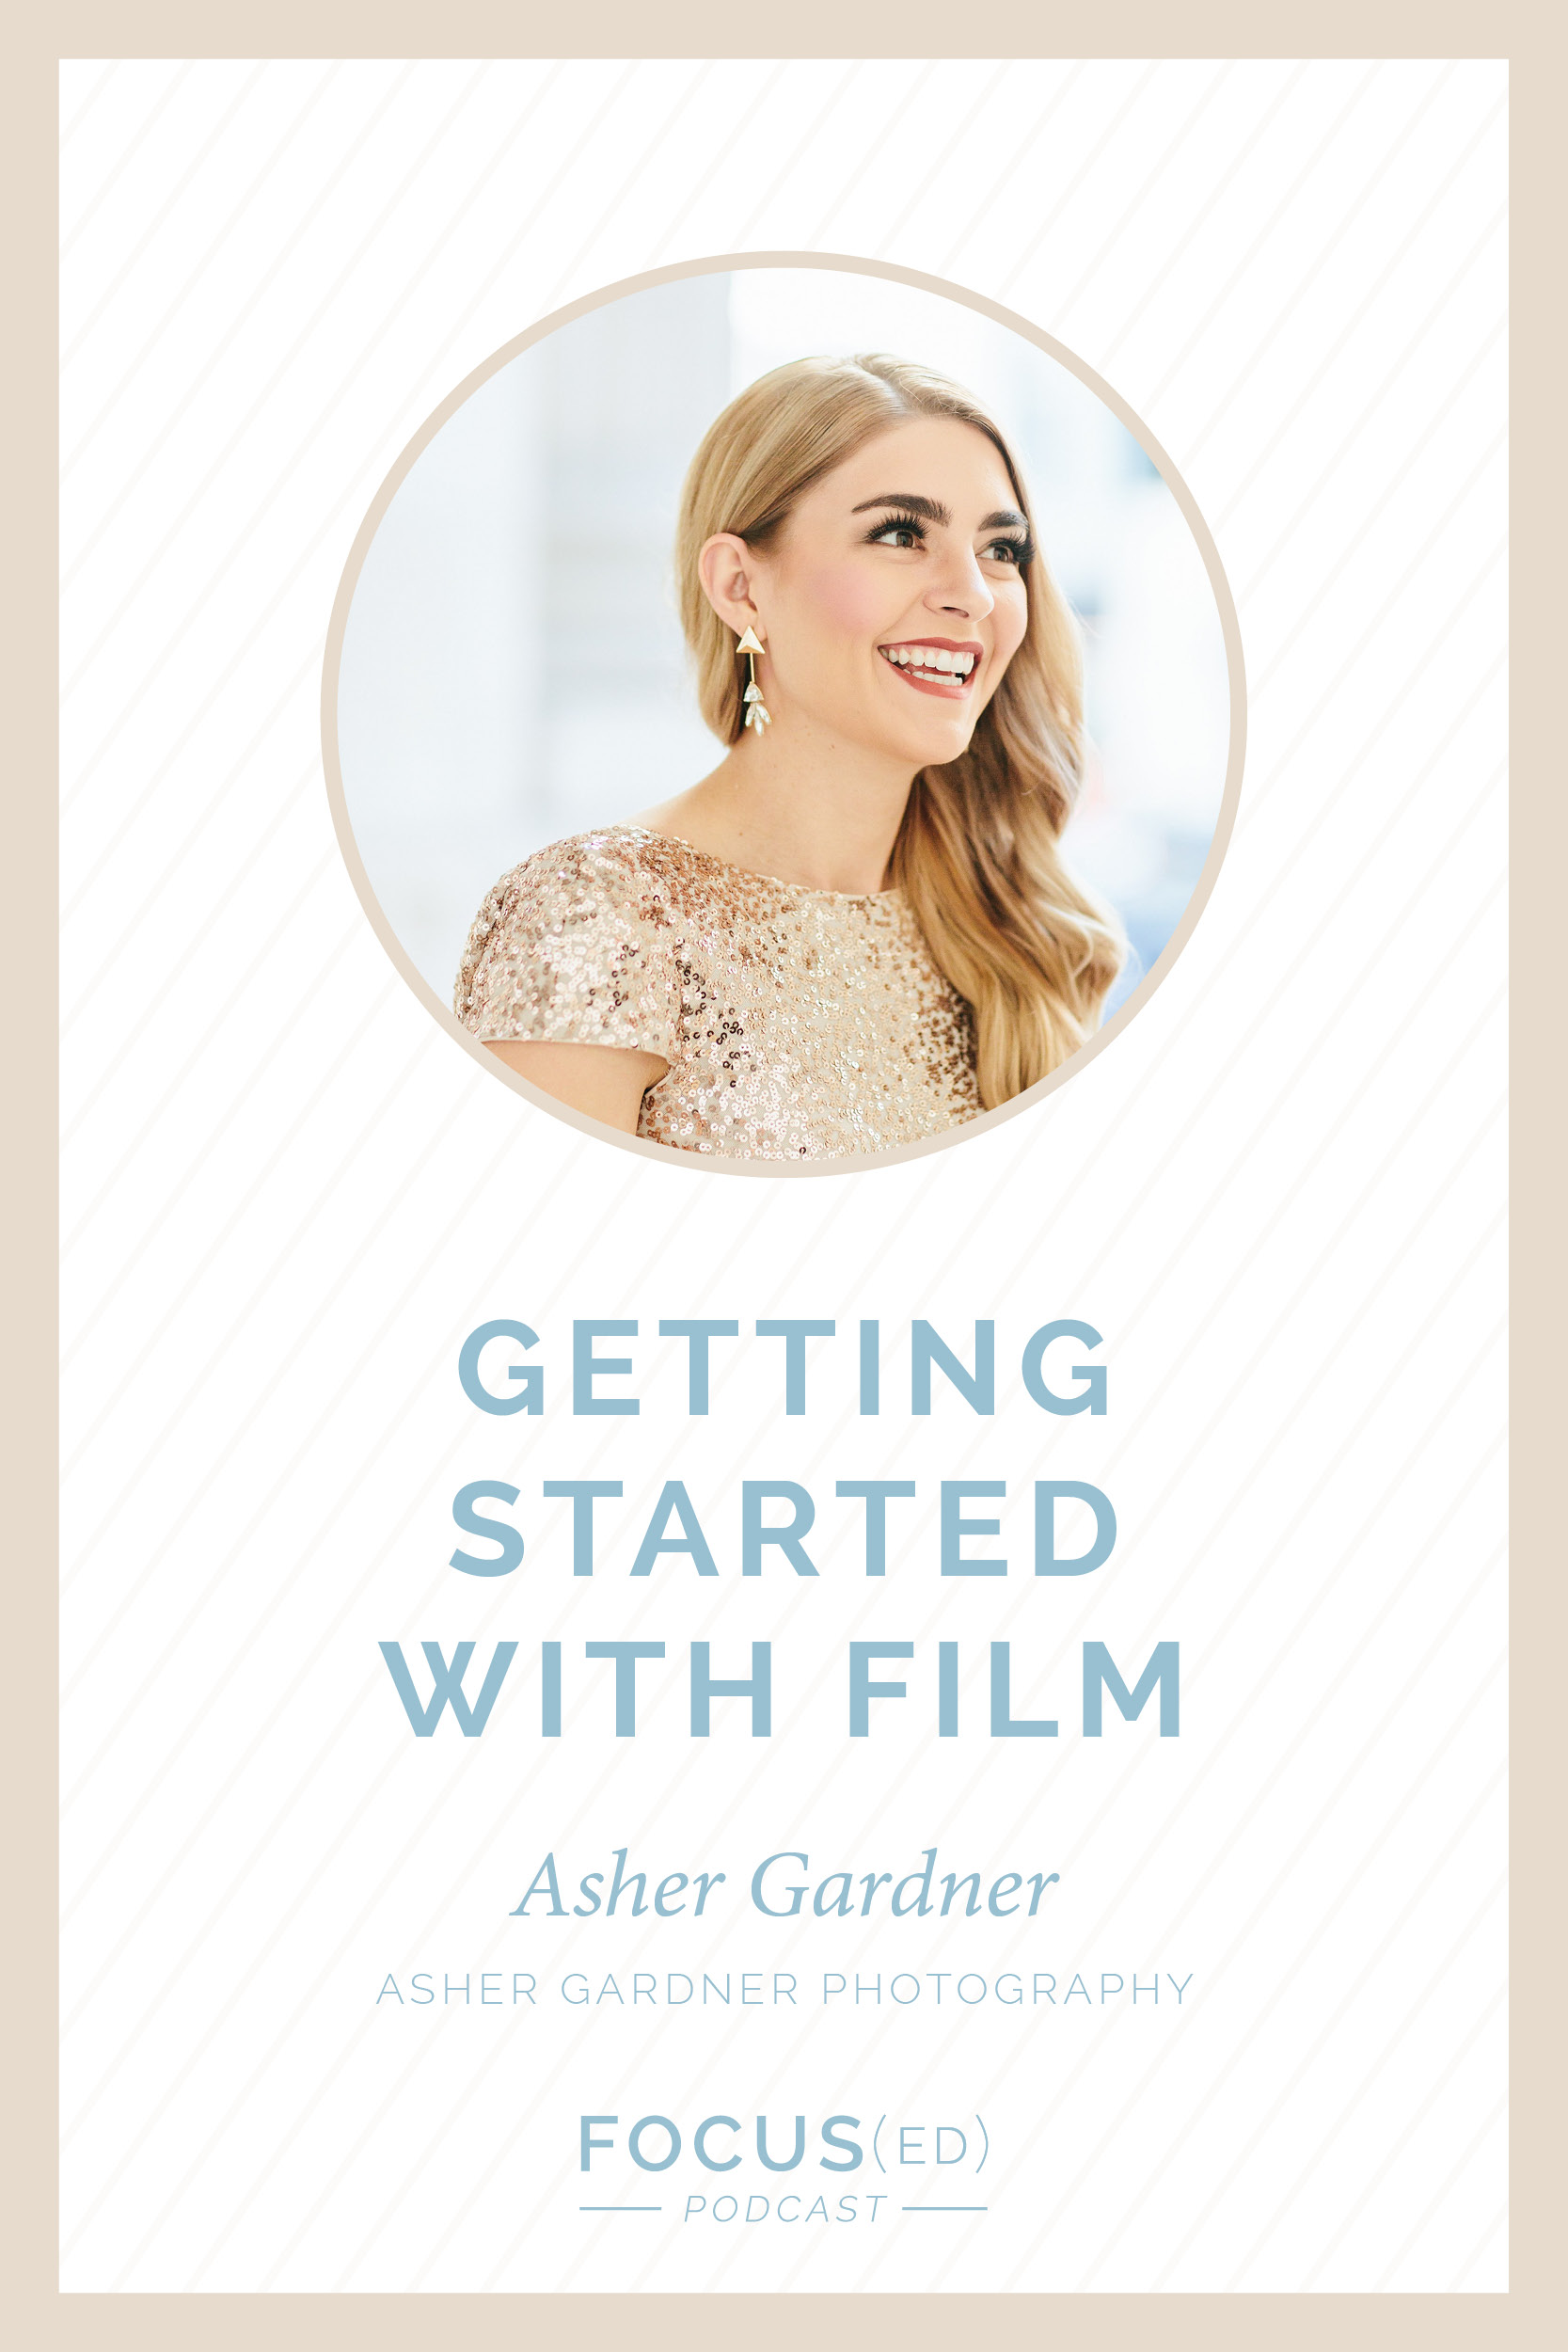 Shooting with film intimidates many photographers, but Asher Gardner is here today to walk you through getting started.  |  Focus(ed) Podcast